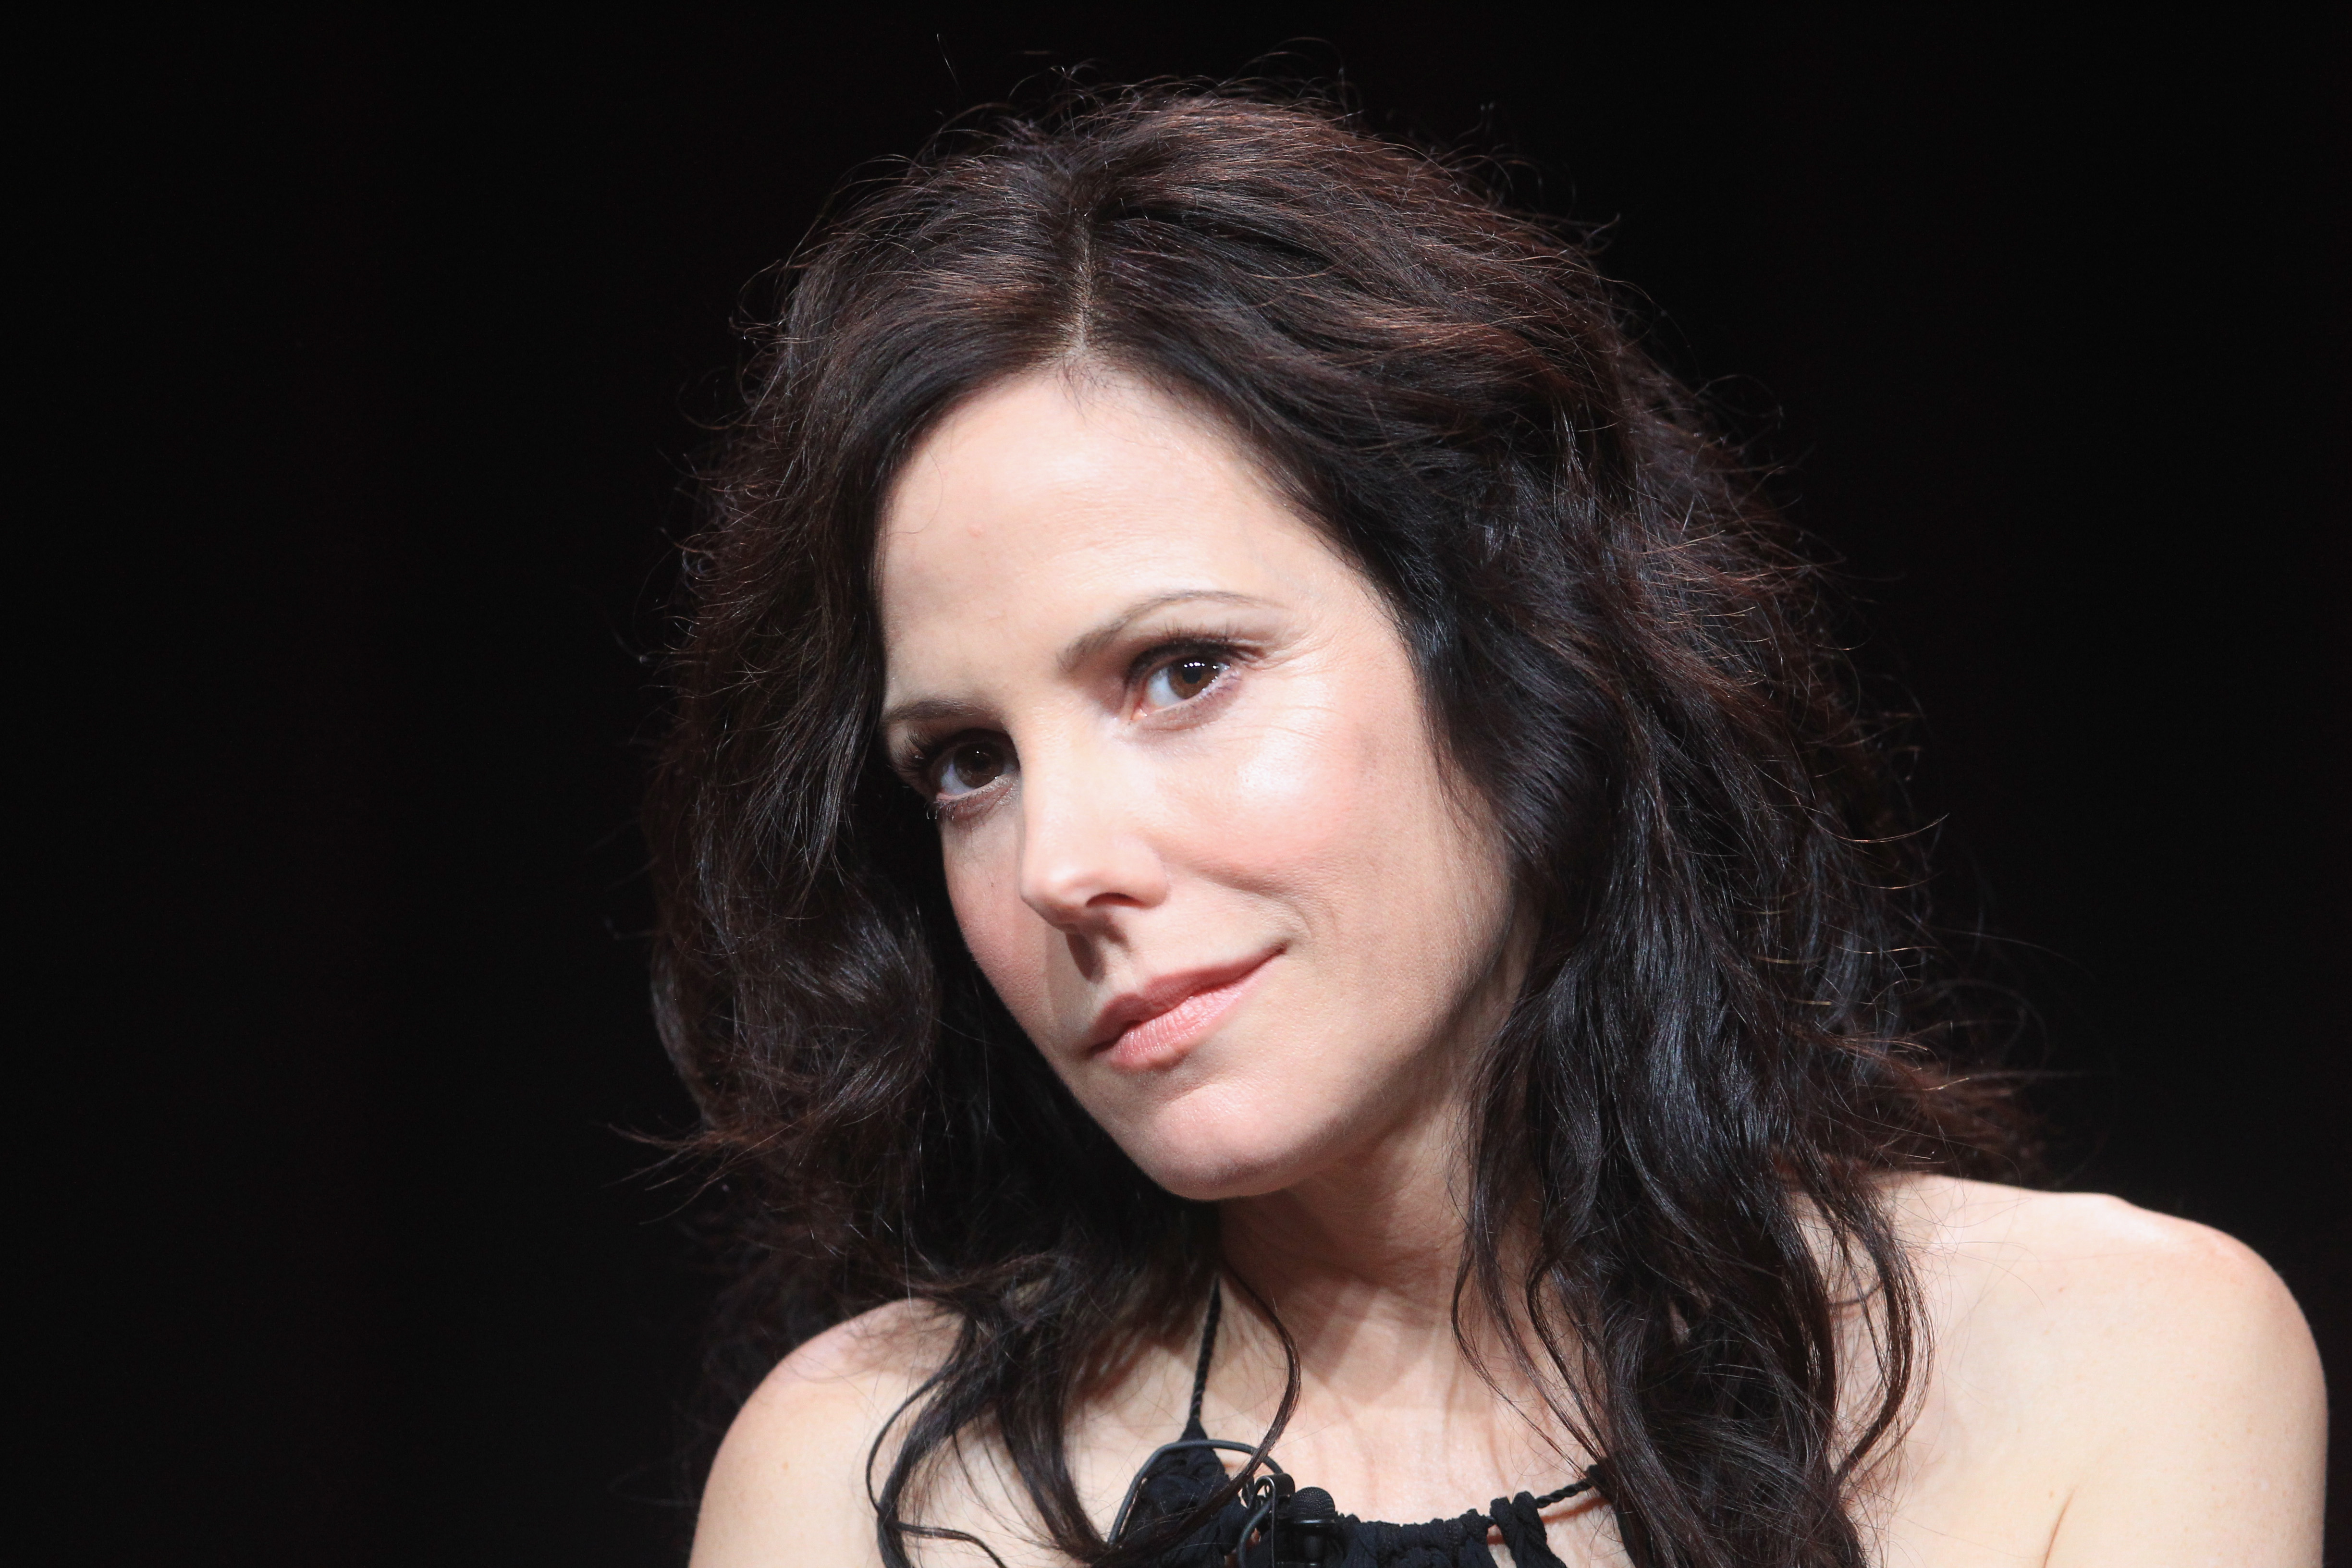 Mary-Louise Parker speaks onstage at the Independent Lens 'Soul Food Junkies' panel during day 1 of the PBS portion of the 2012 Summer TCA Tour held at the Beverly Hilton Hotel on July 21, 2012 in Beverly Hills, California.